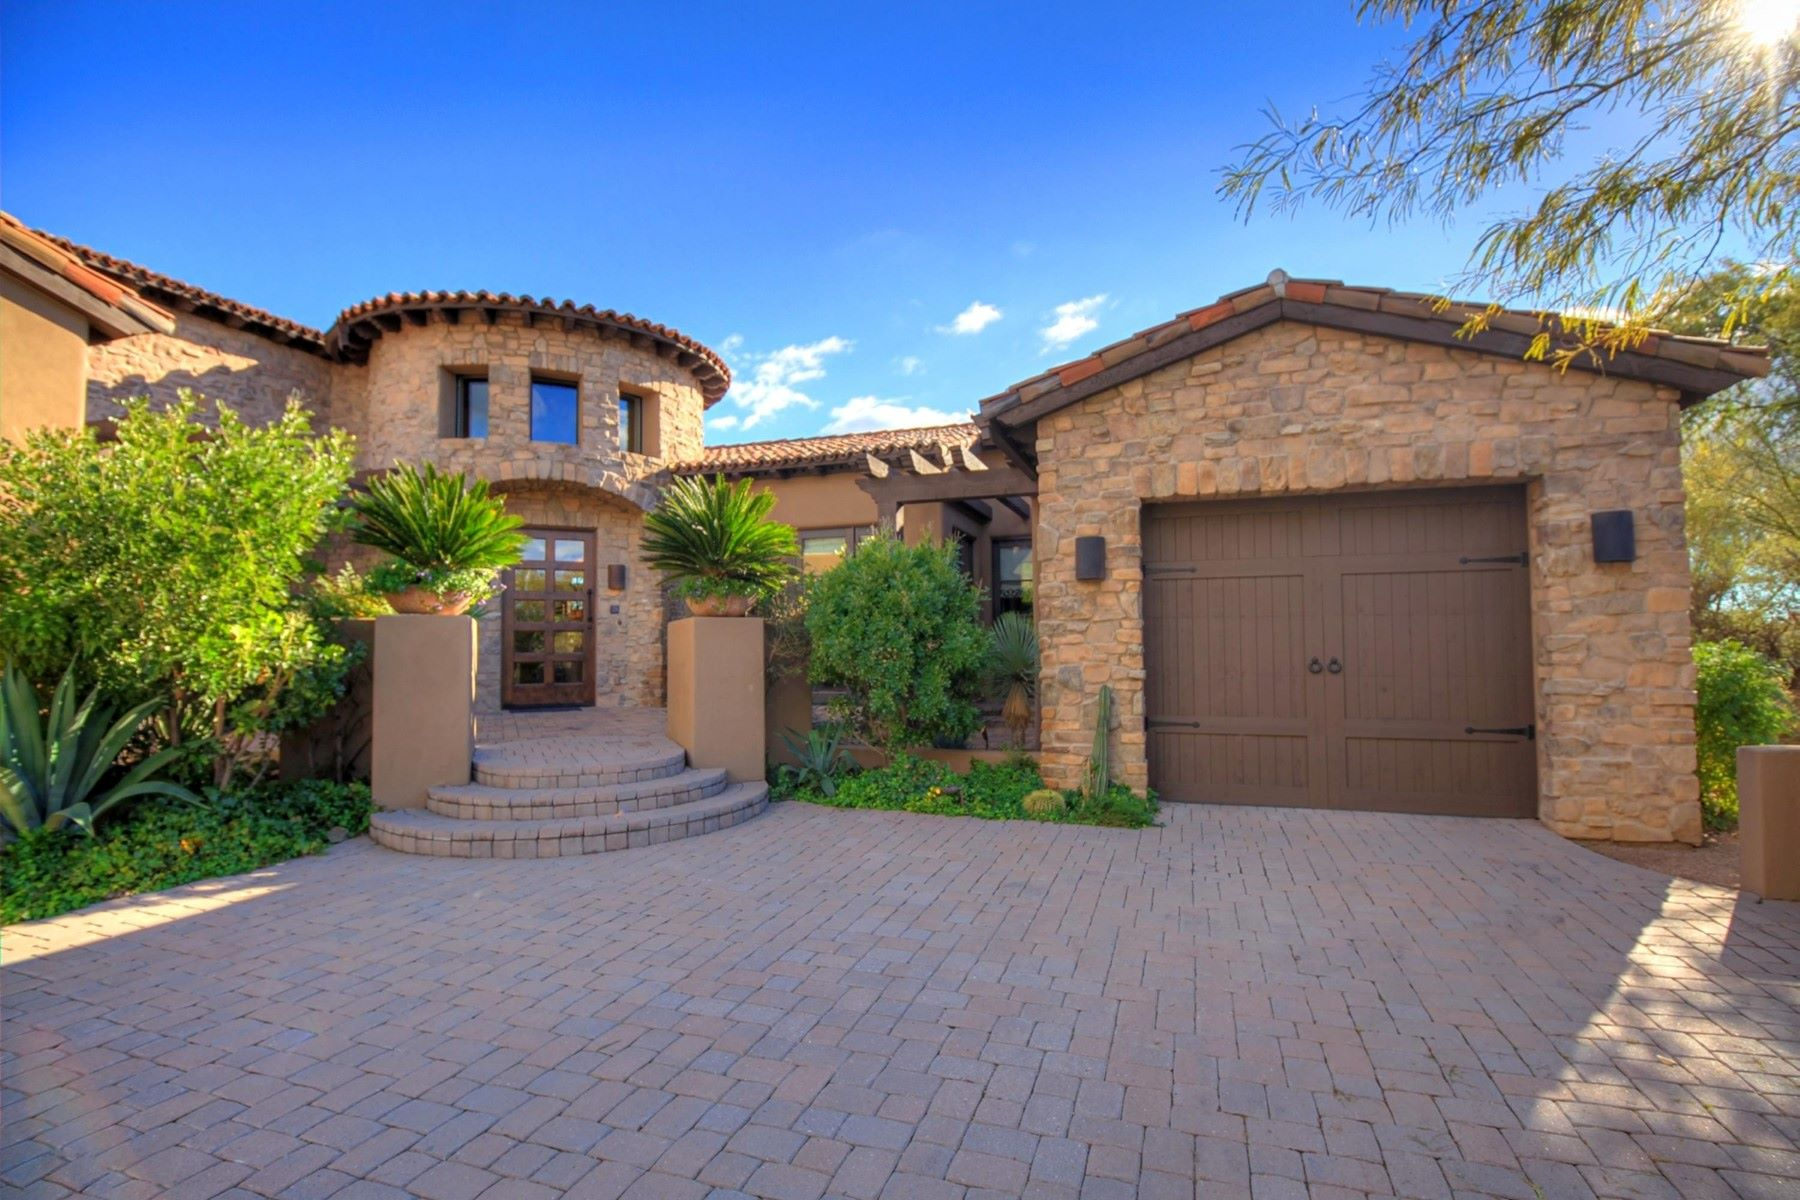 Single Family Home for Sale at Extraordinary single-level masterpiece in Desert Mountain 40025 N 107th St Scottsdale, Arizona, 85262 United States